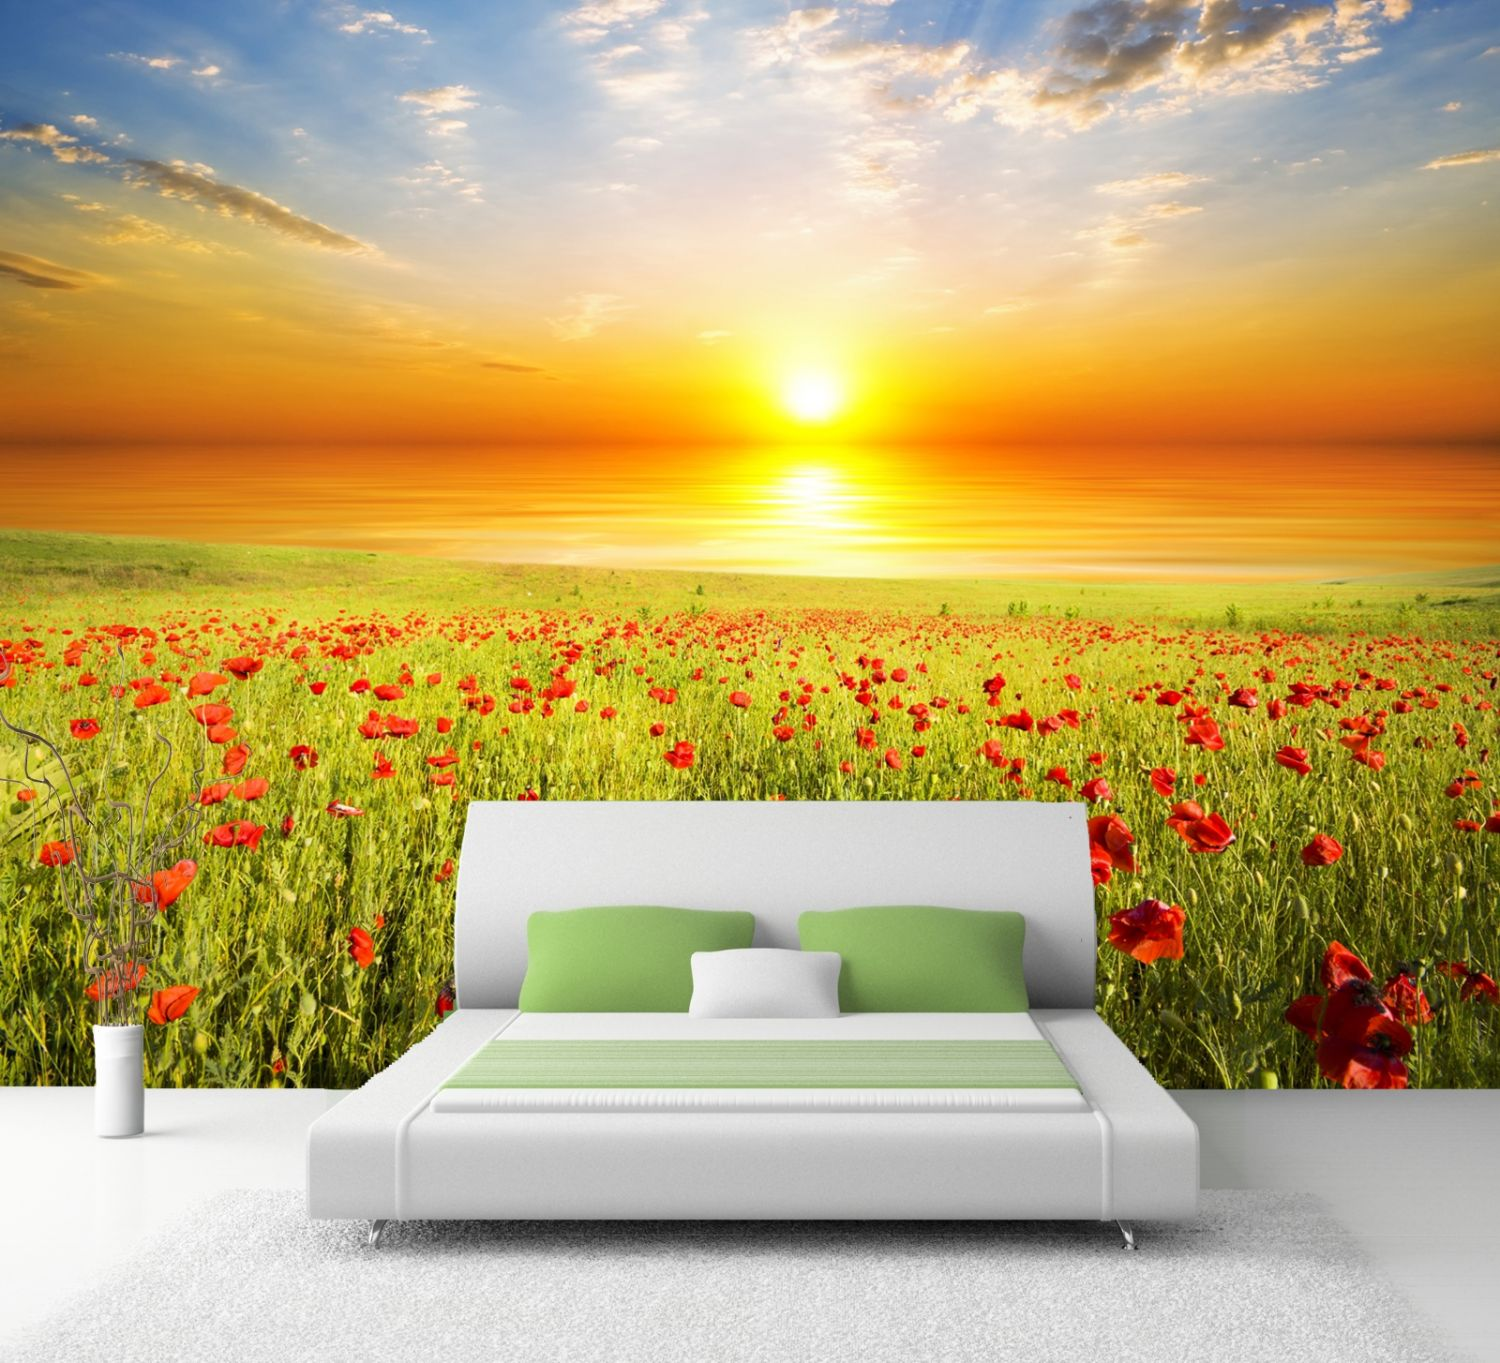 xxl poster fototapete wandtapete vlies natur mohnblumen. Black Bedroom Furniture Sets. Home Design Ideas